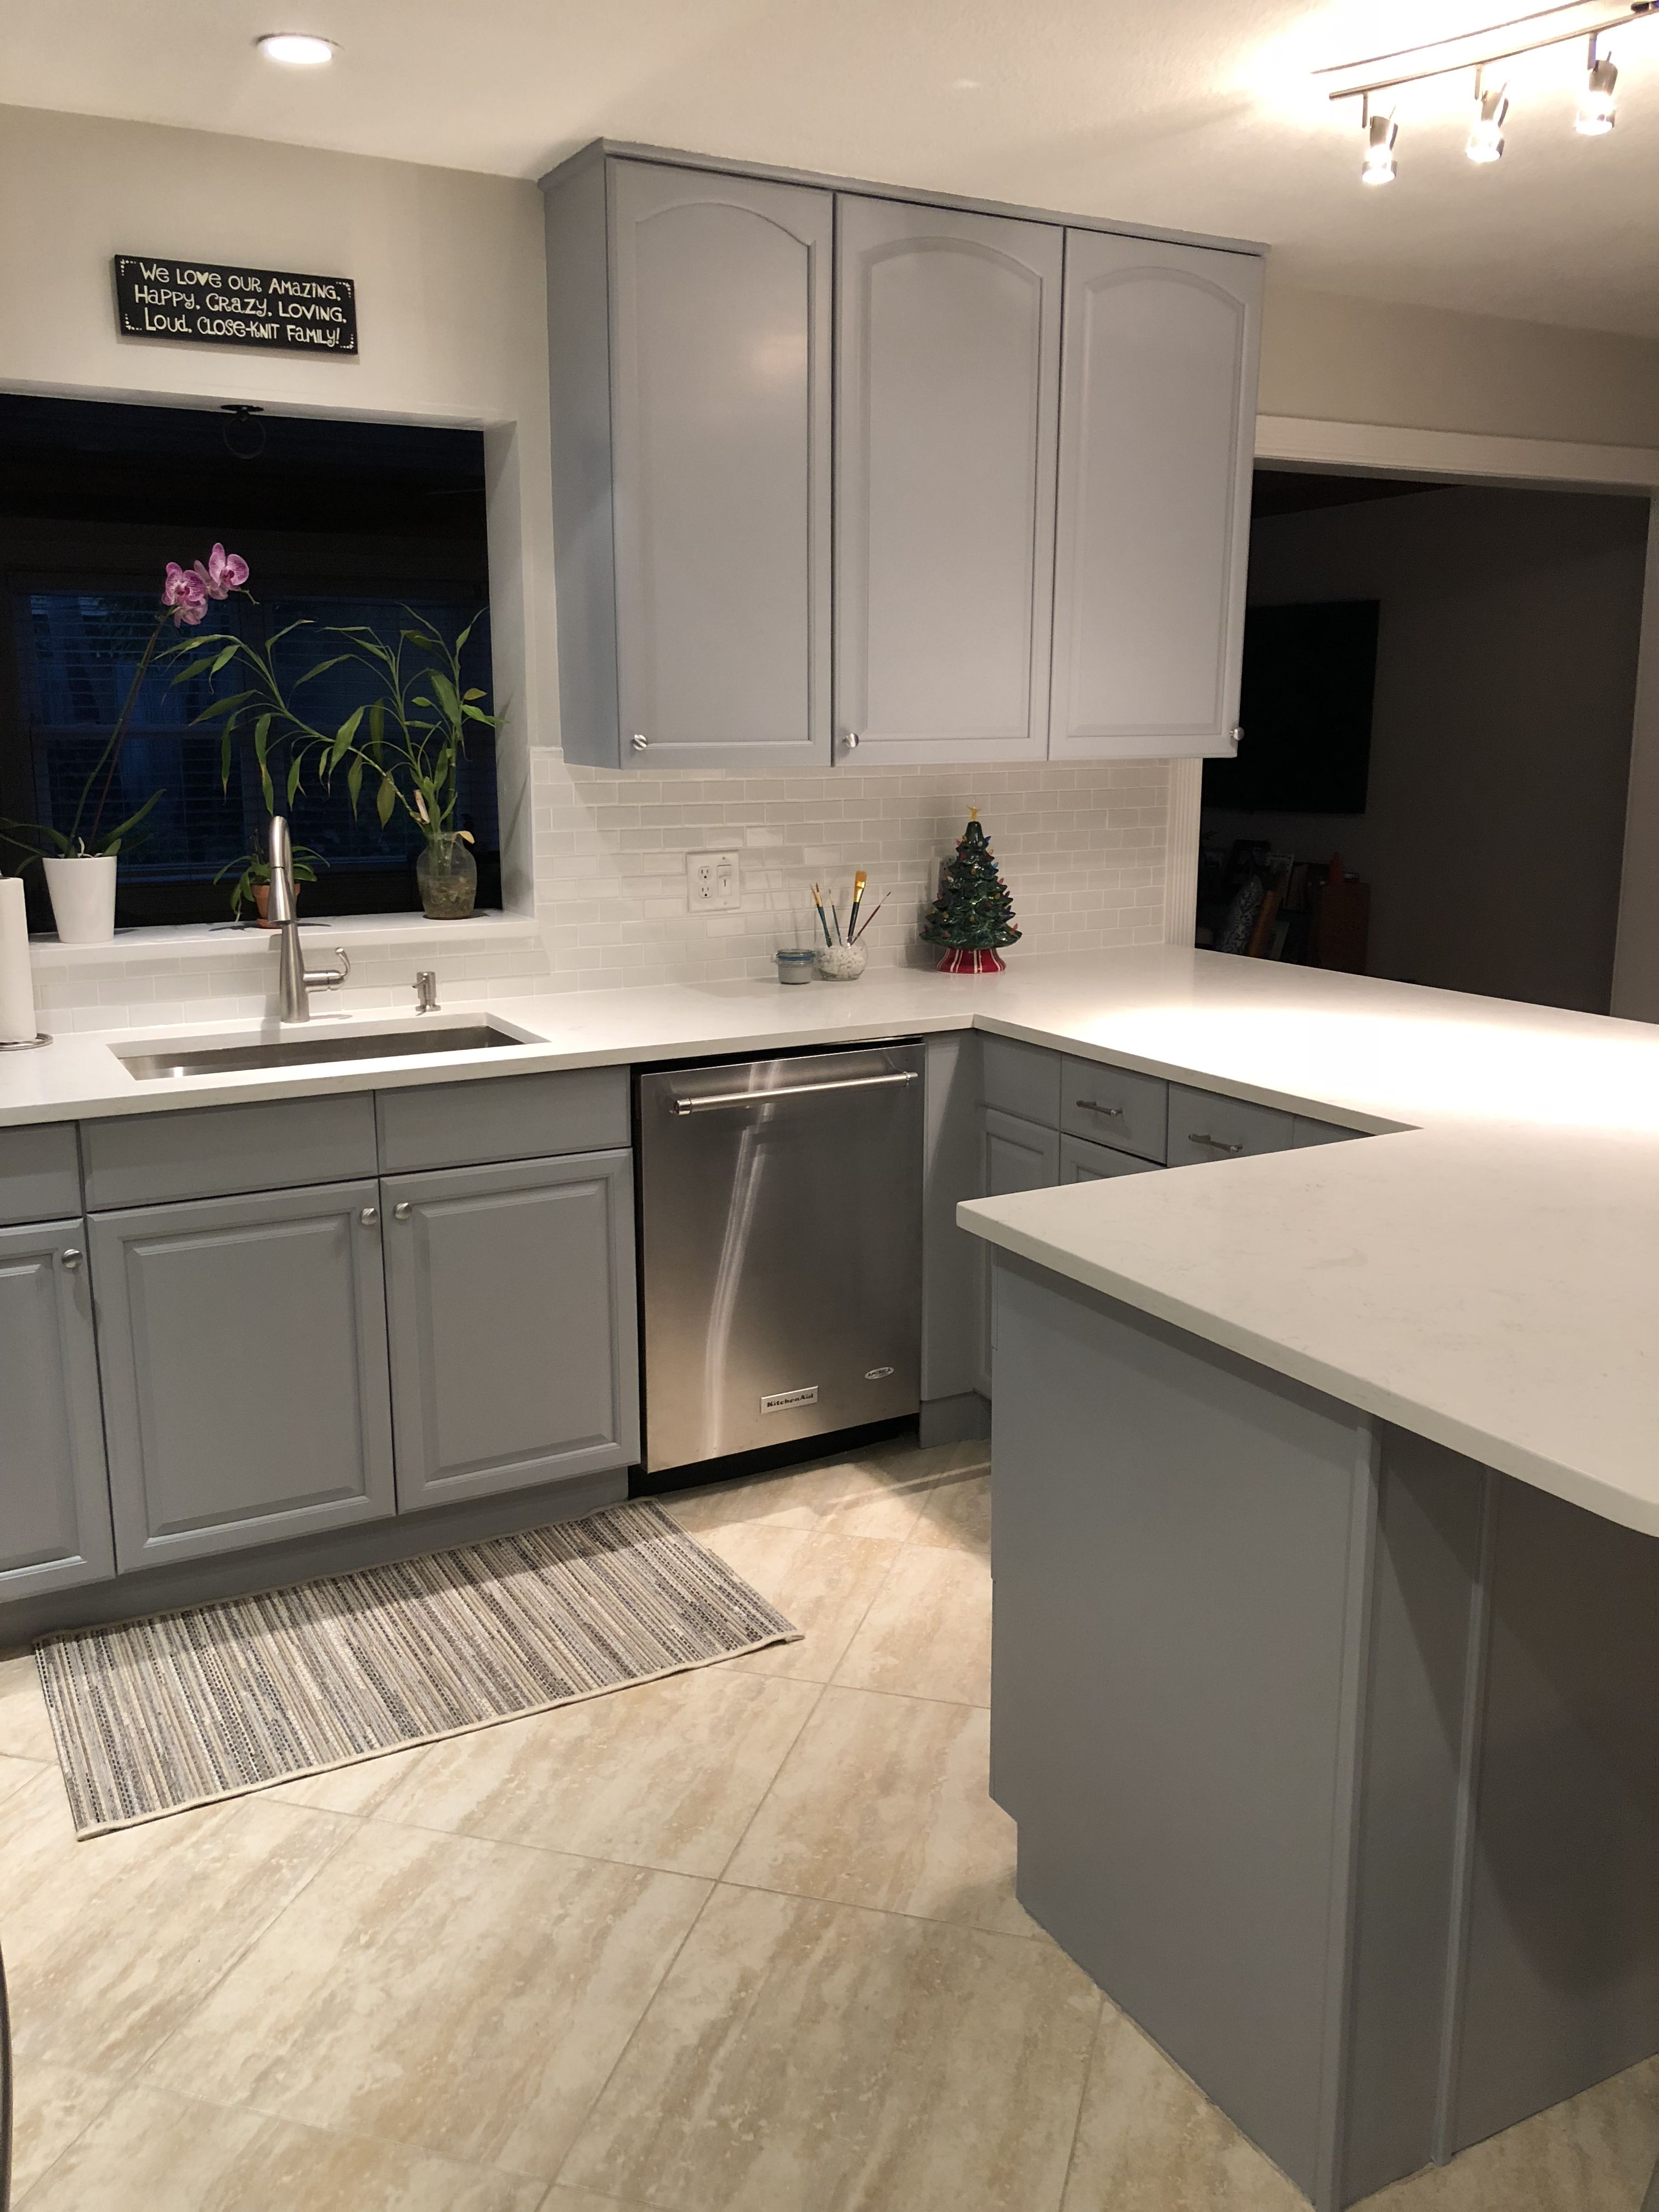 from maple brown to distant grey clean and modern grey kitchens kitchen cabinets on kitchen decor grey cabinets id=63298